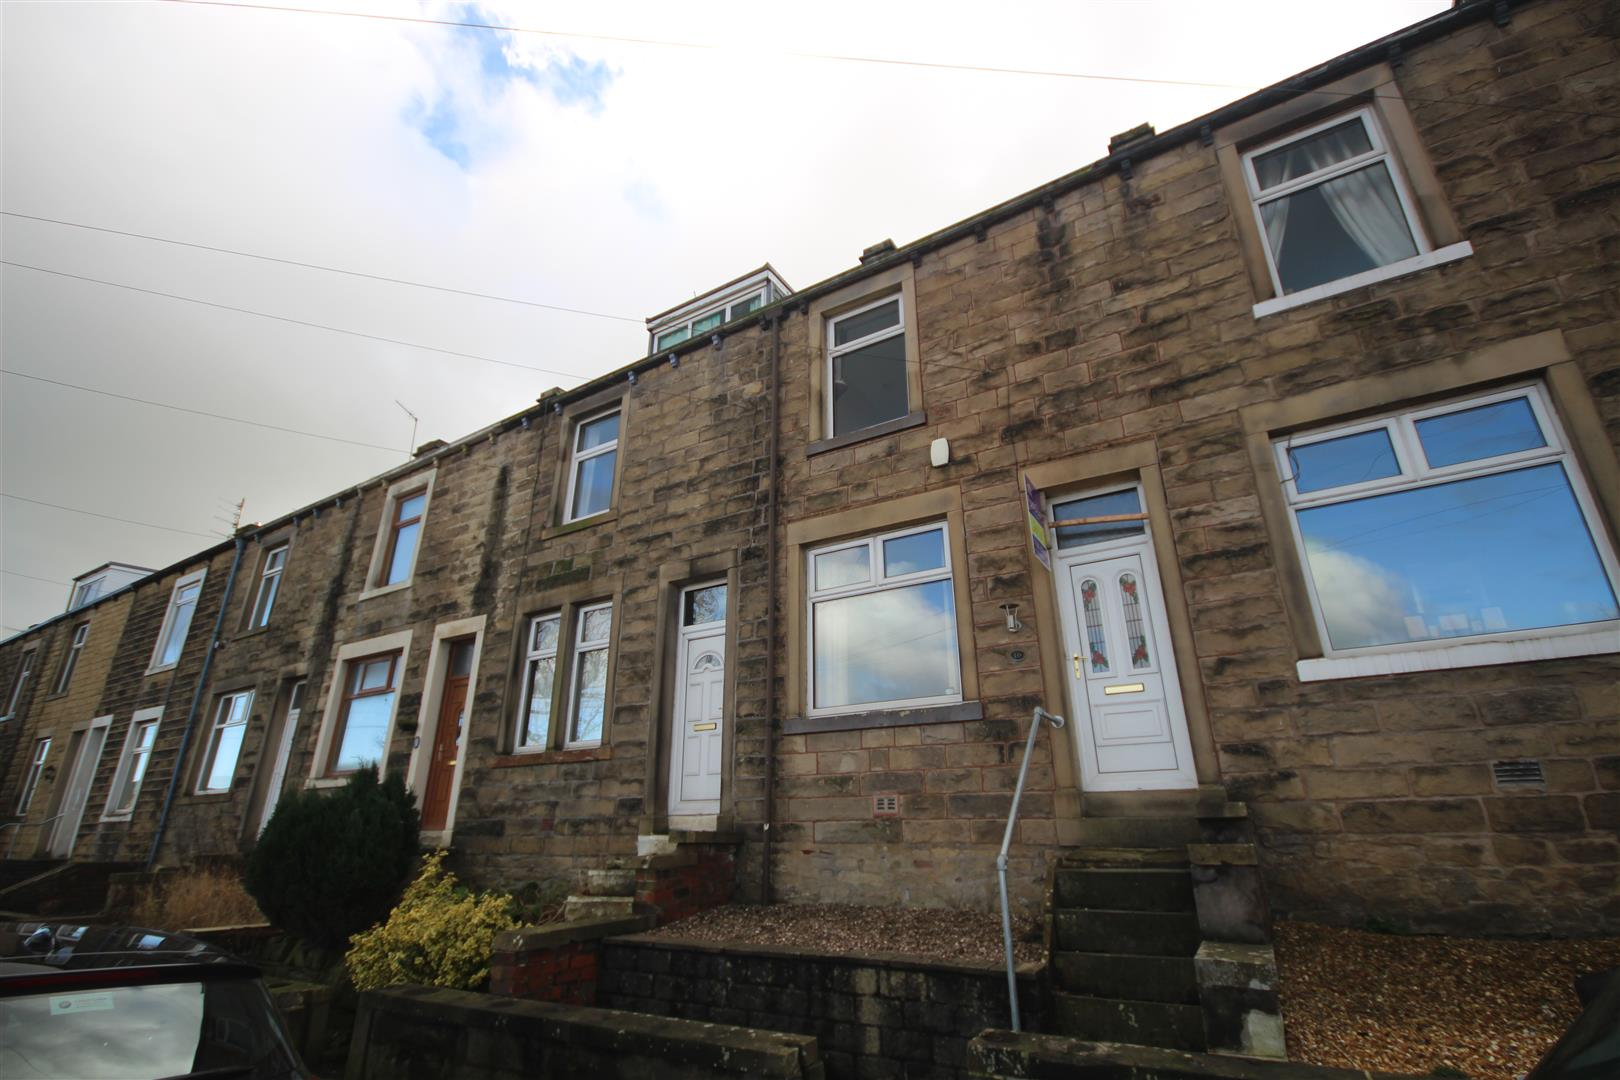 3 bedroom mid terrace house To Let in Barnoldswick - 2016-02-03 13.35.12.jpg